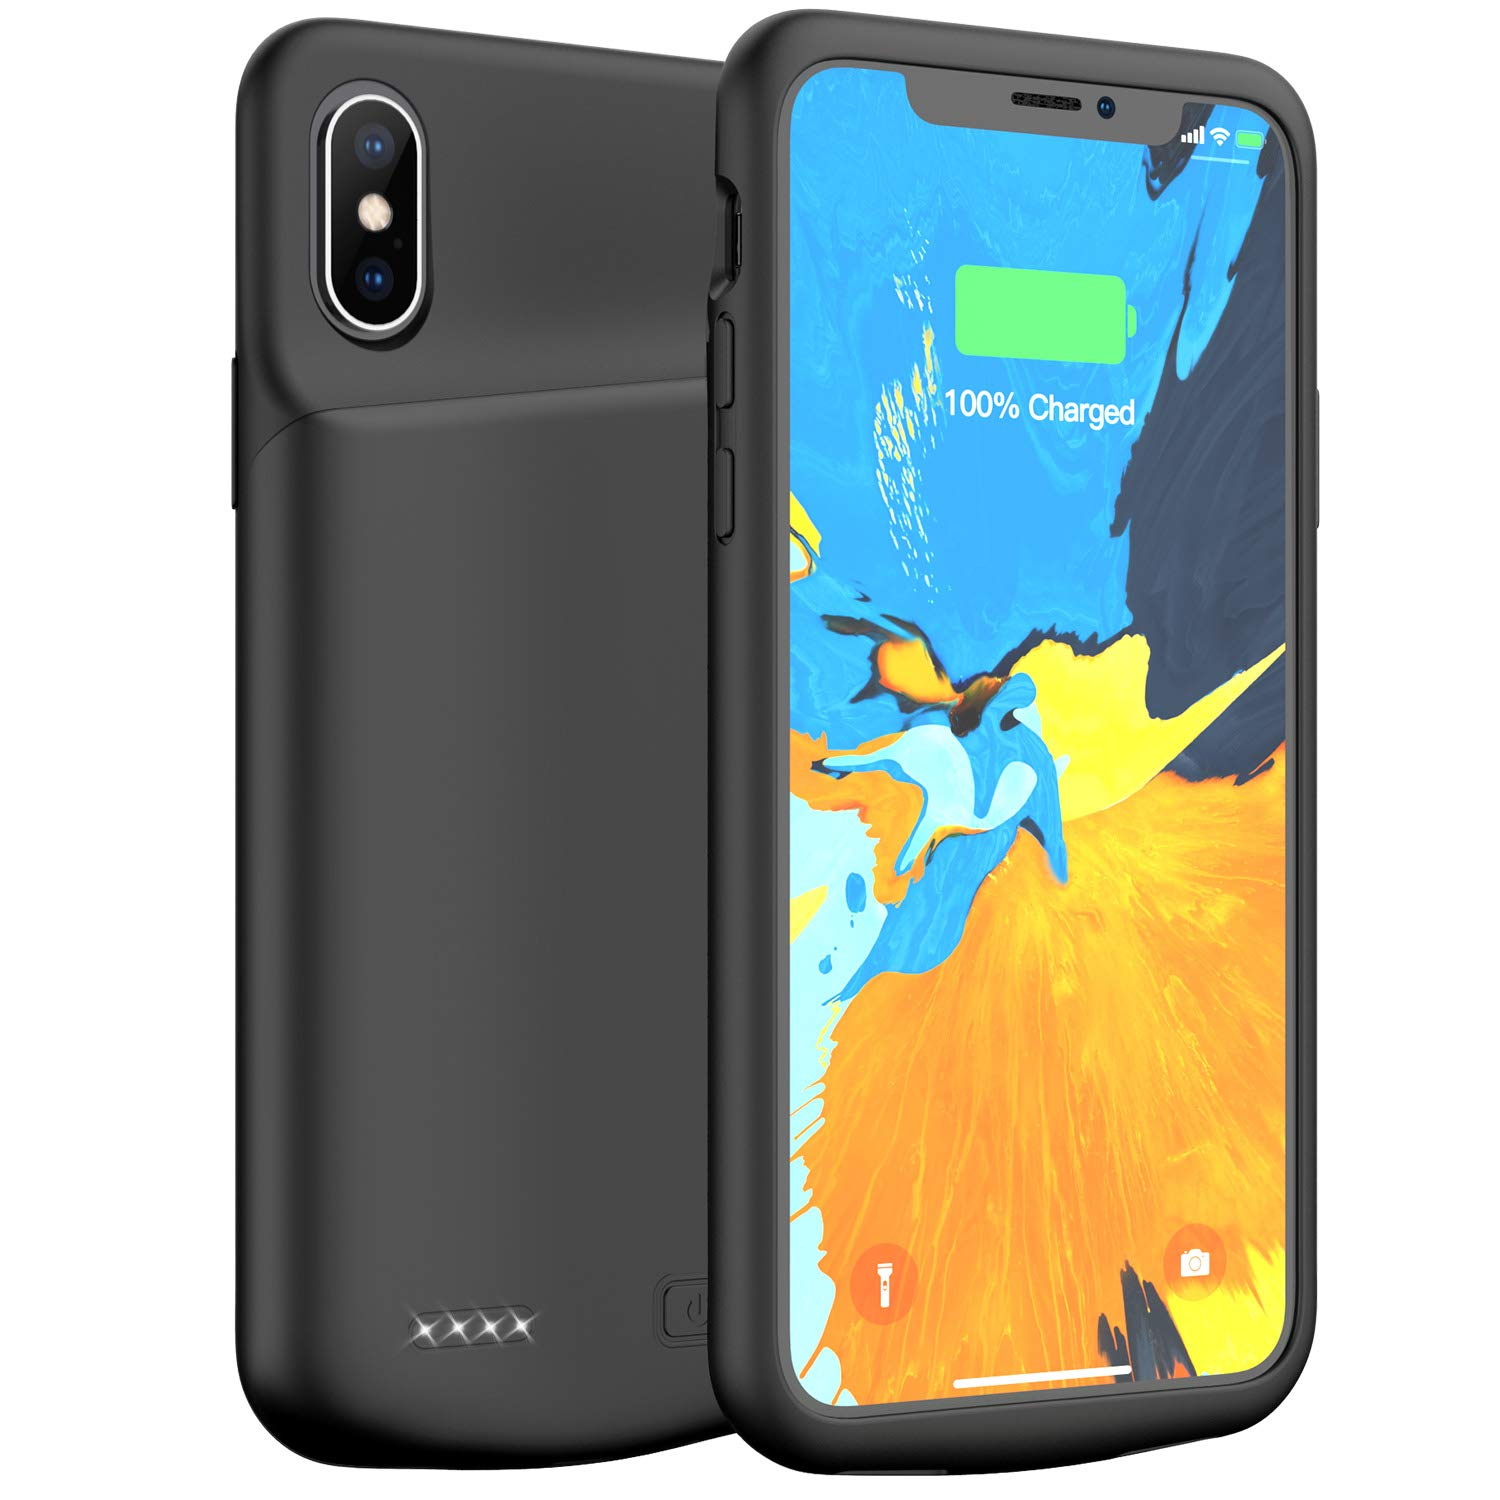 Funda Con Bateria de 4000mah para Apple Iphone X/Xs LONLIF [7K85H3TD]